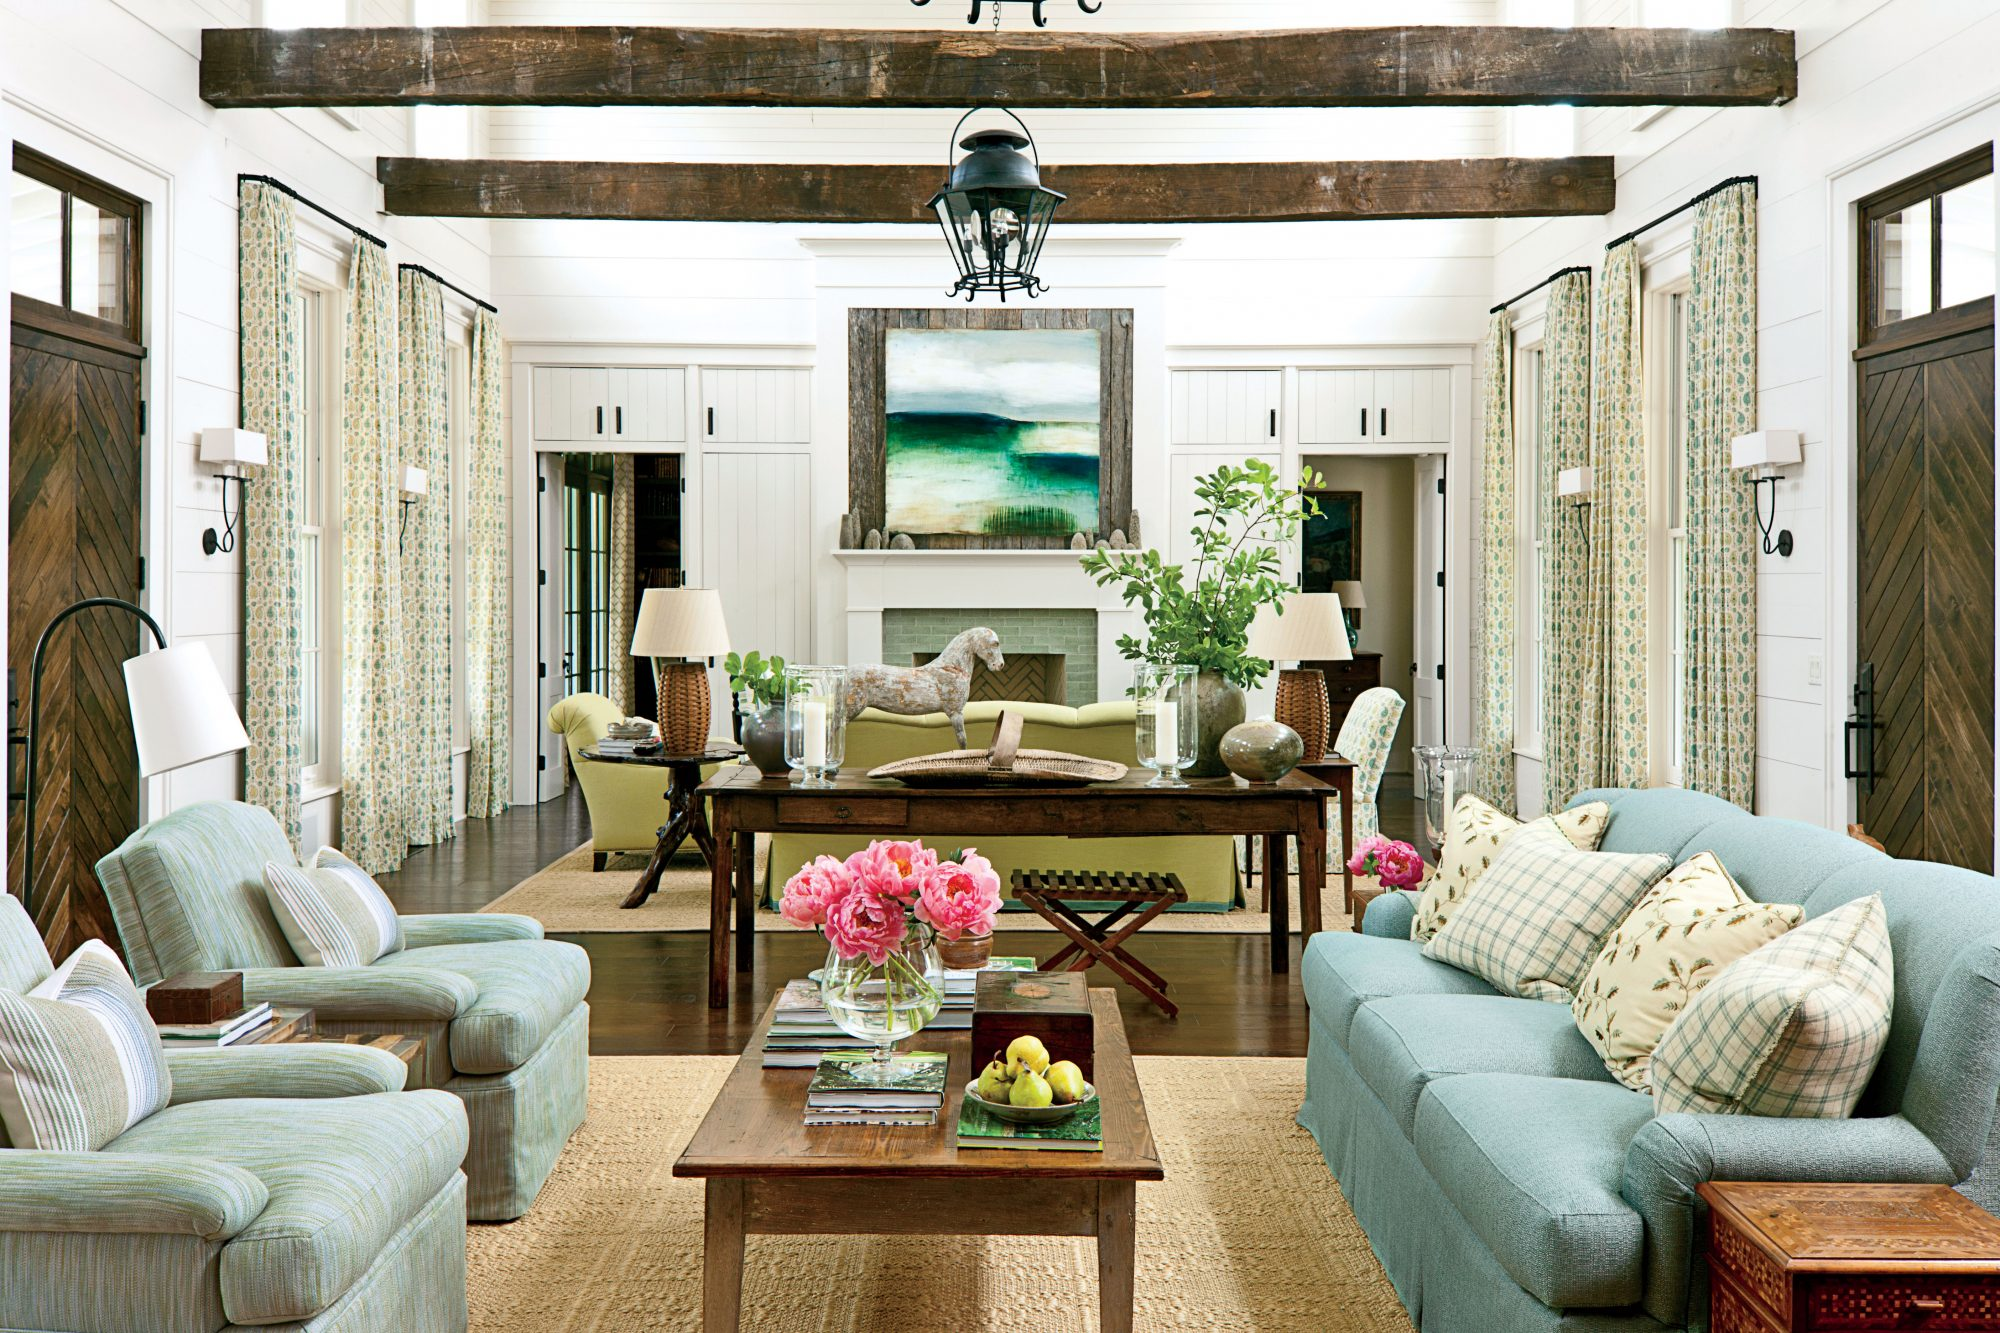 Superb 106 Living Room Decorating Ideas Southern Design